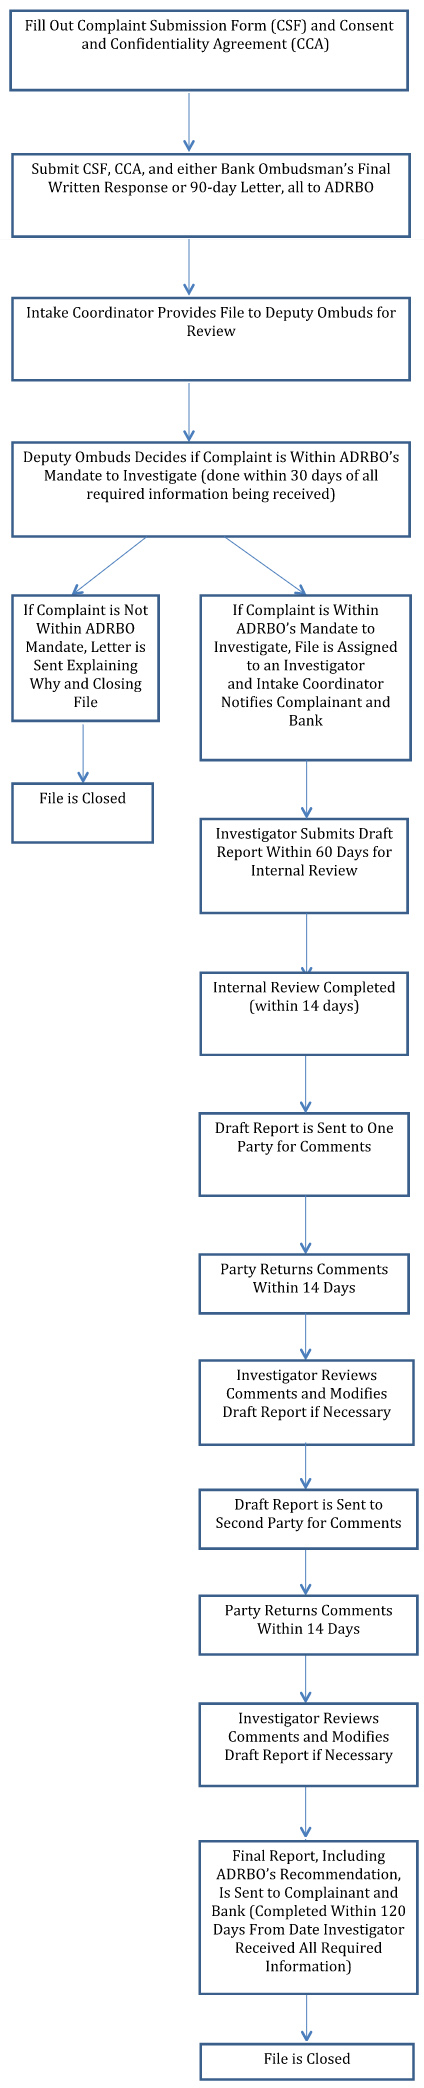 ADRBO CHART OF OUR PROCESS